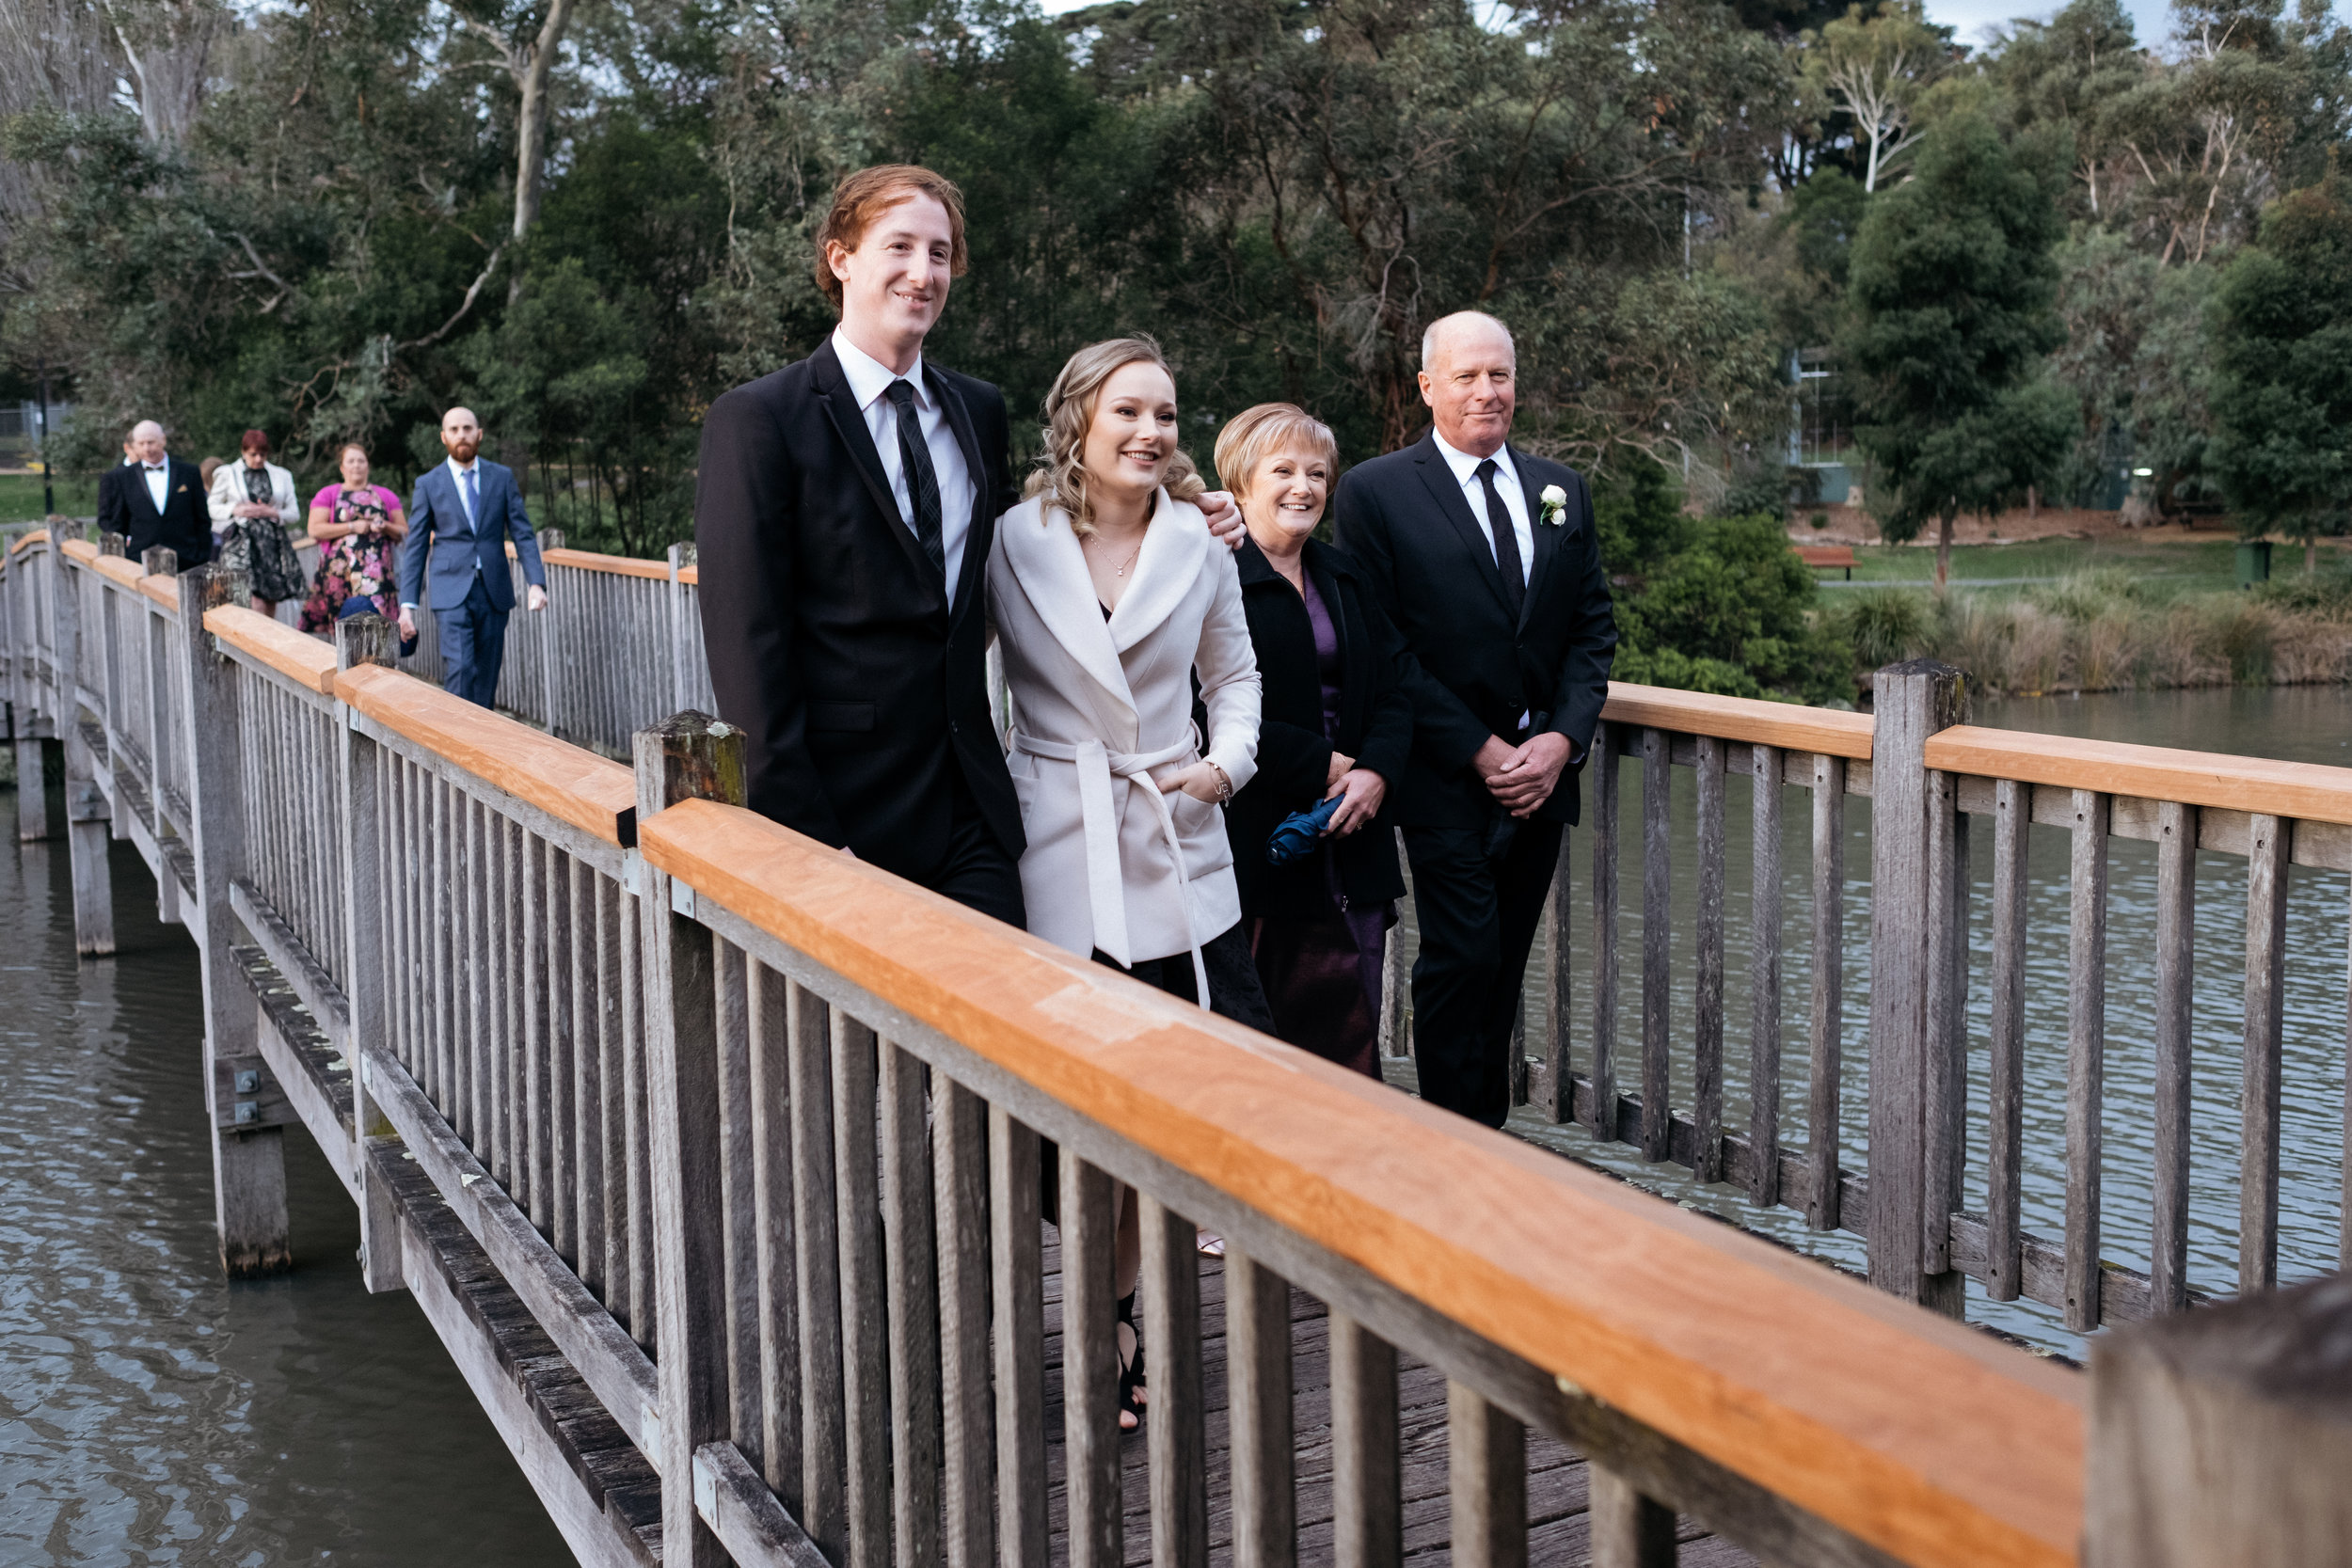 Family walking across bridge see bride and groom for the first time